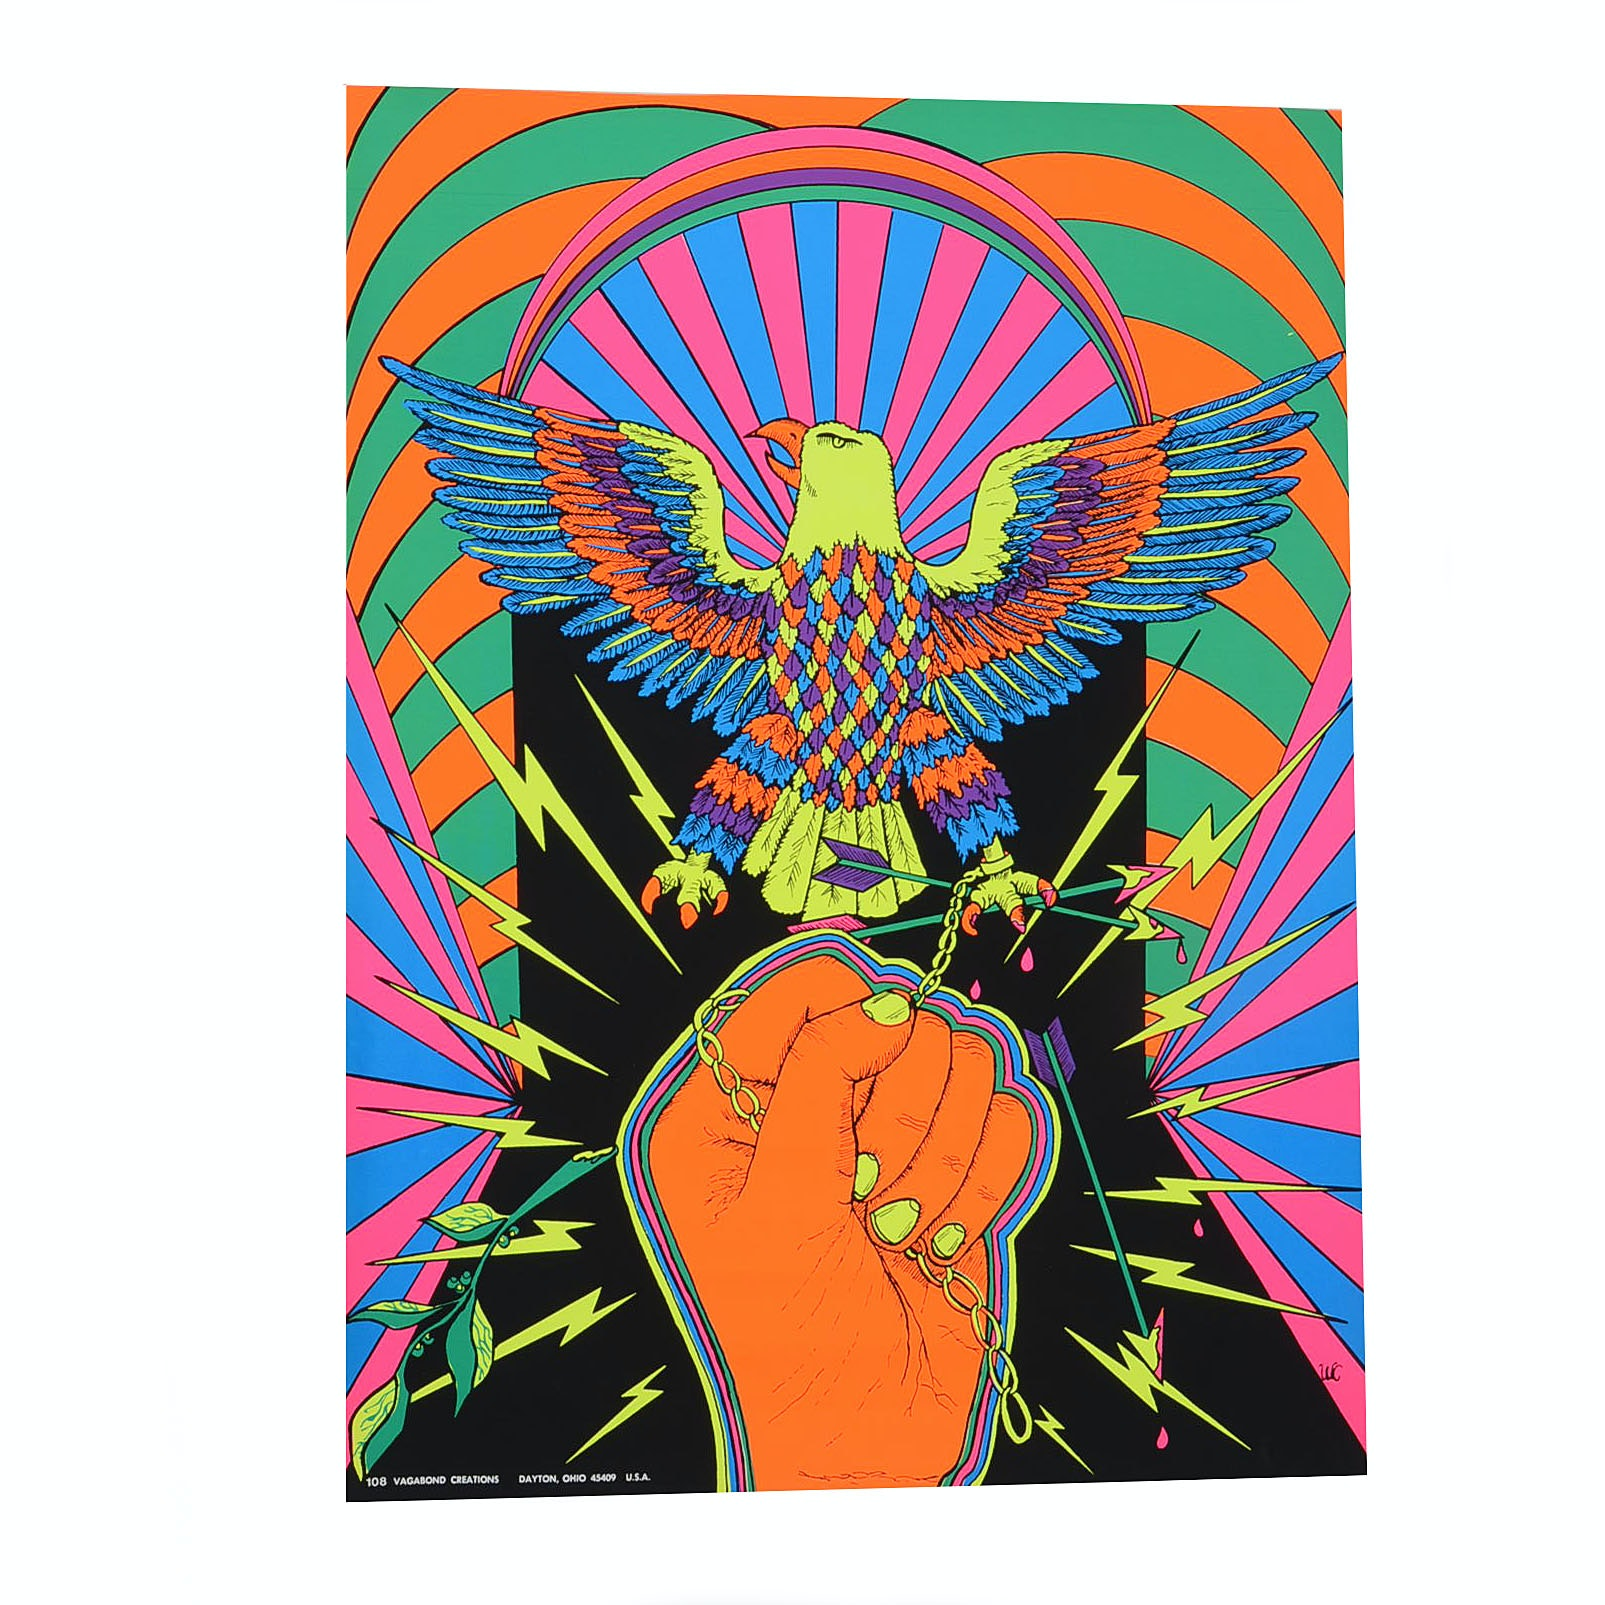 Psychedelic Serigraph Poster of a Chained Eagle